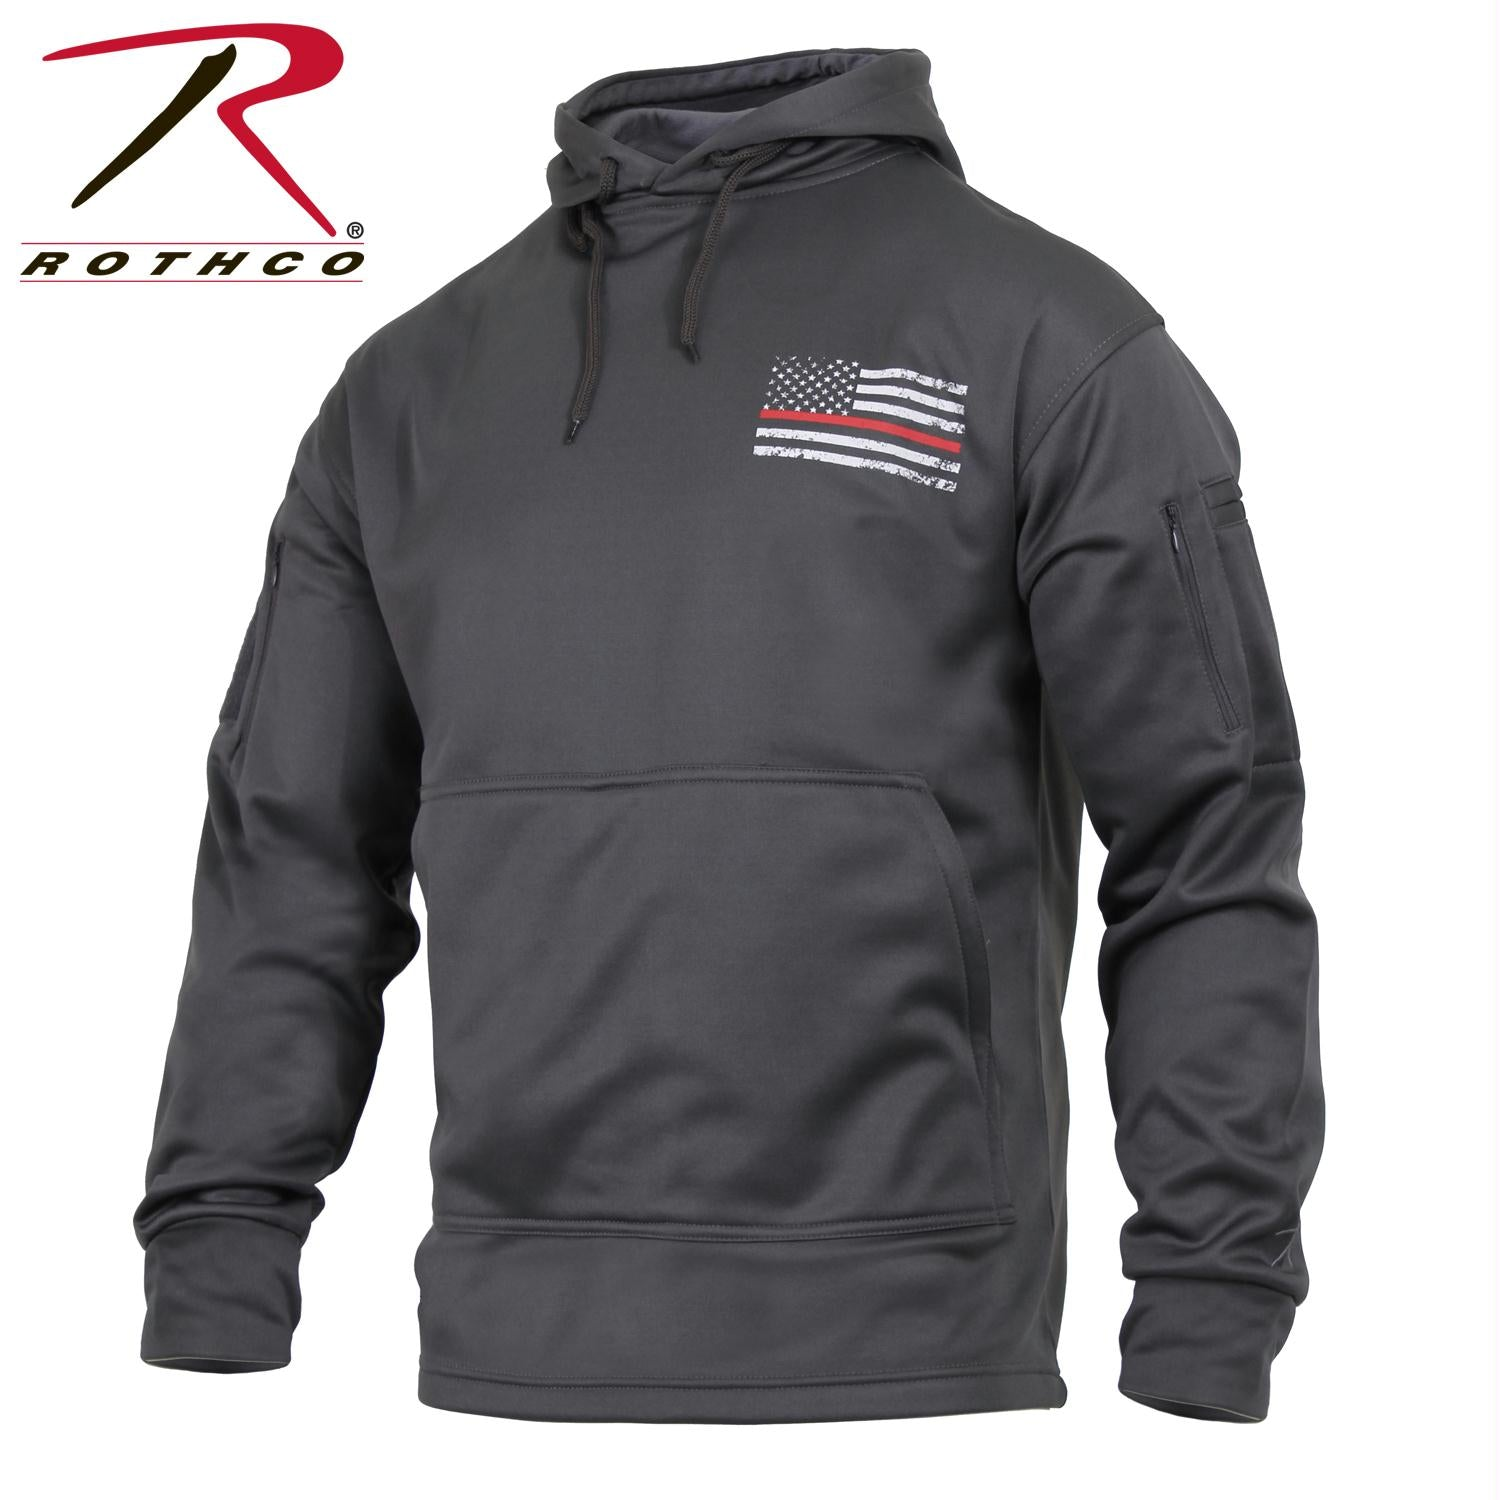 Rothco Thin Red Line Concealed Carry Hoodie